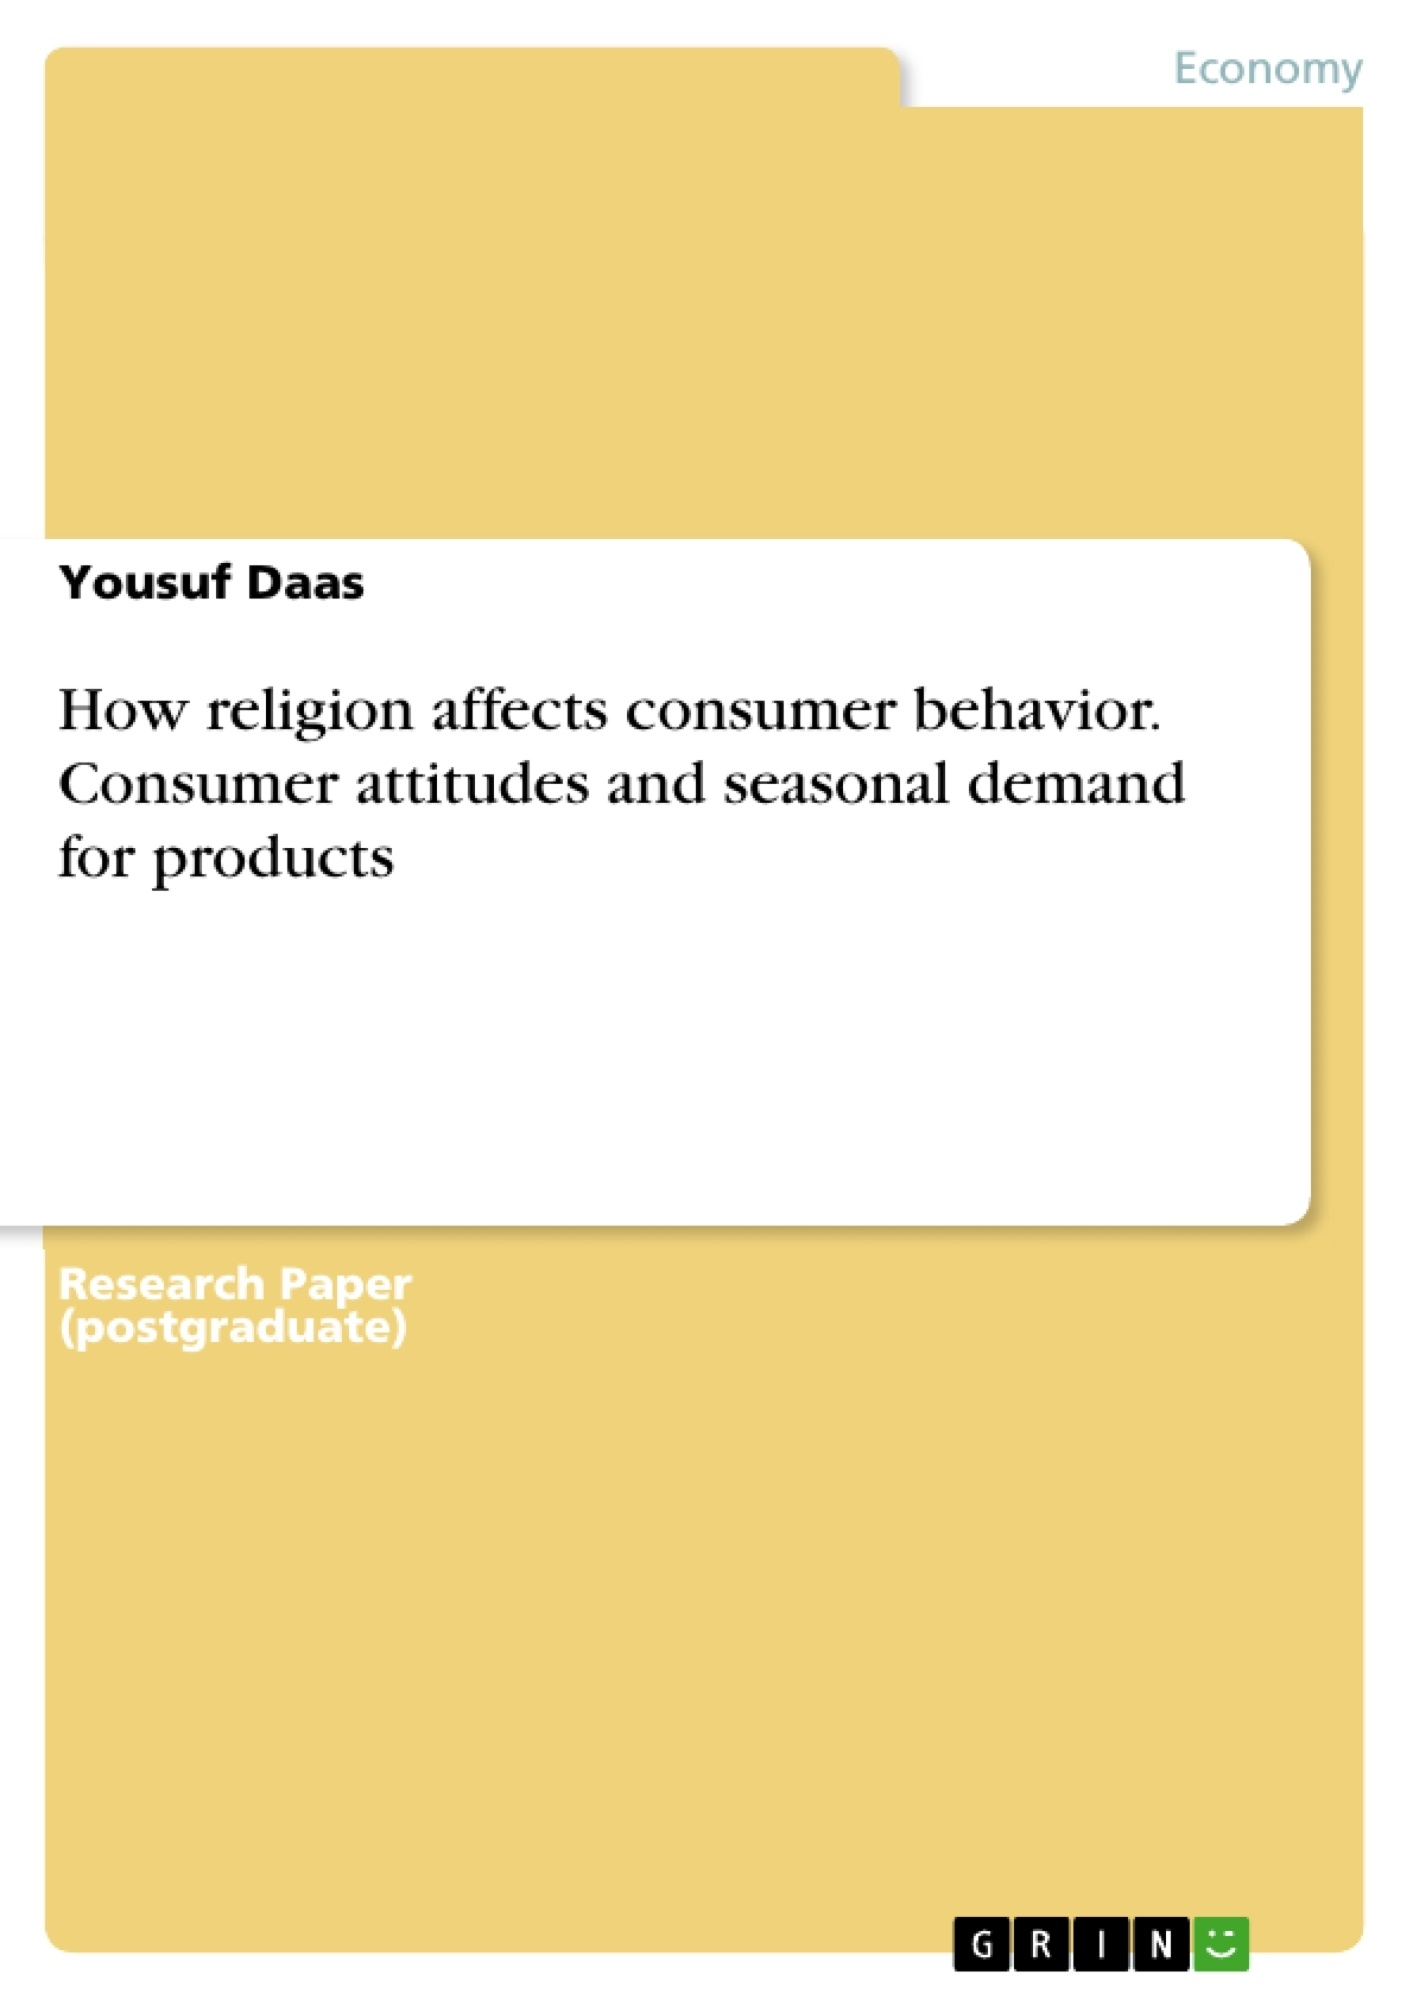 Title: How religion affects consumer behavior. Consumer attitudes and seasonal demand for products